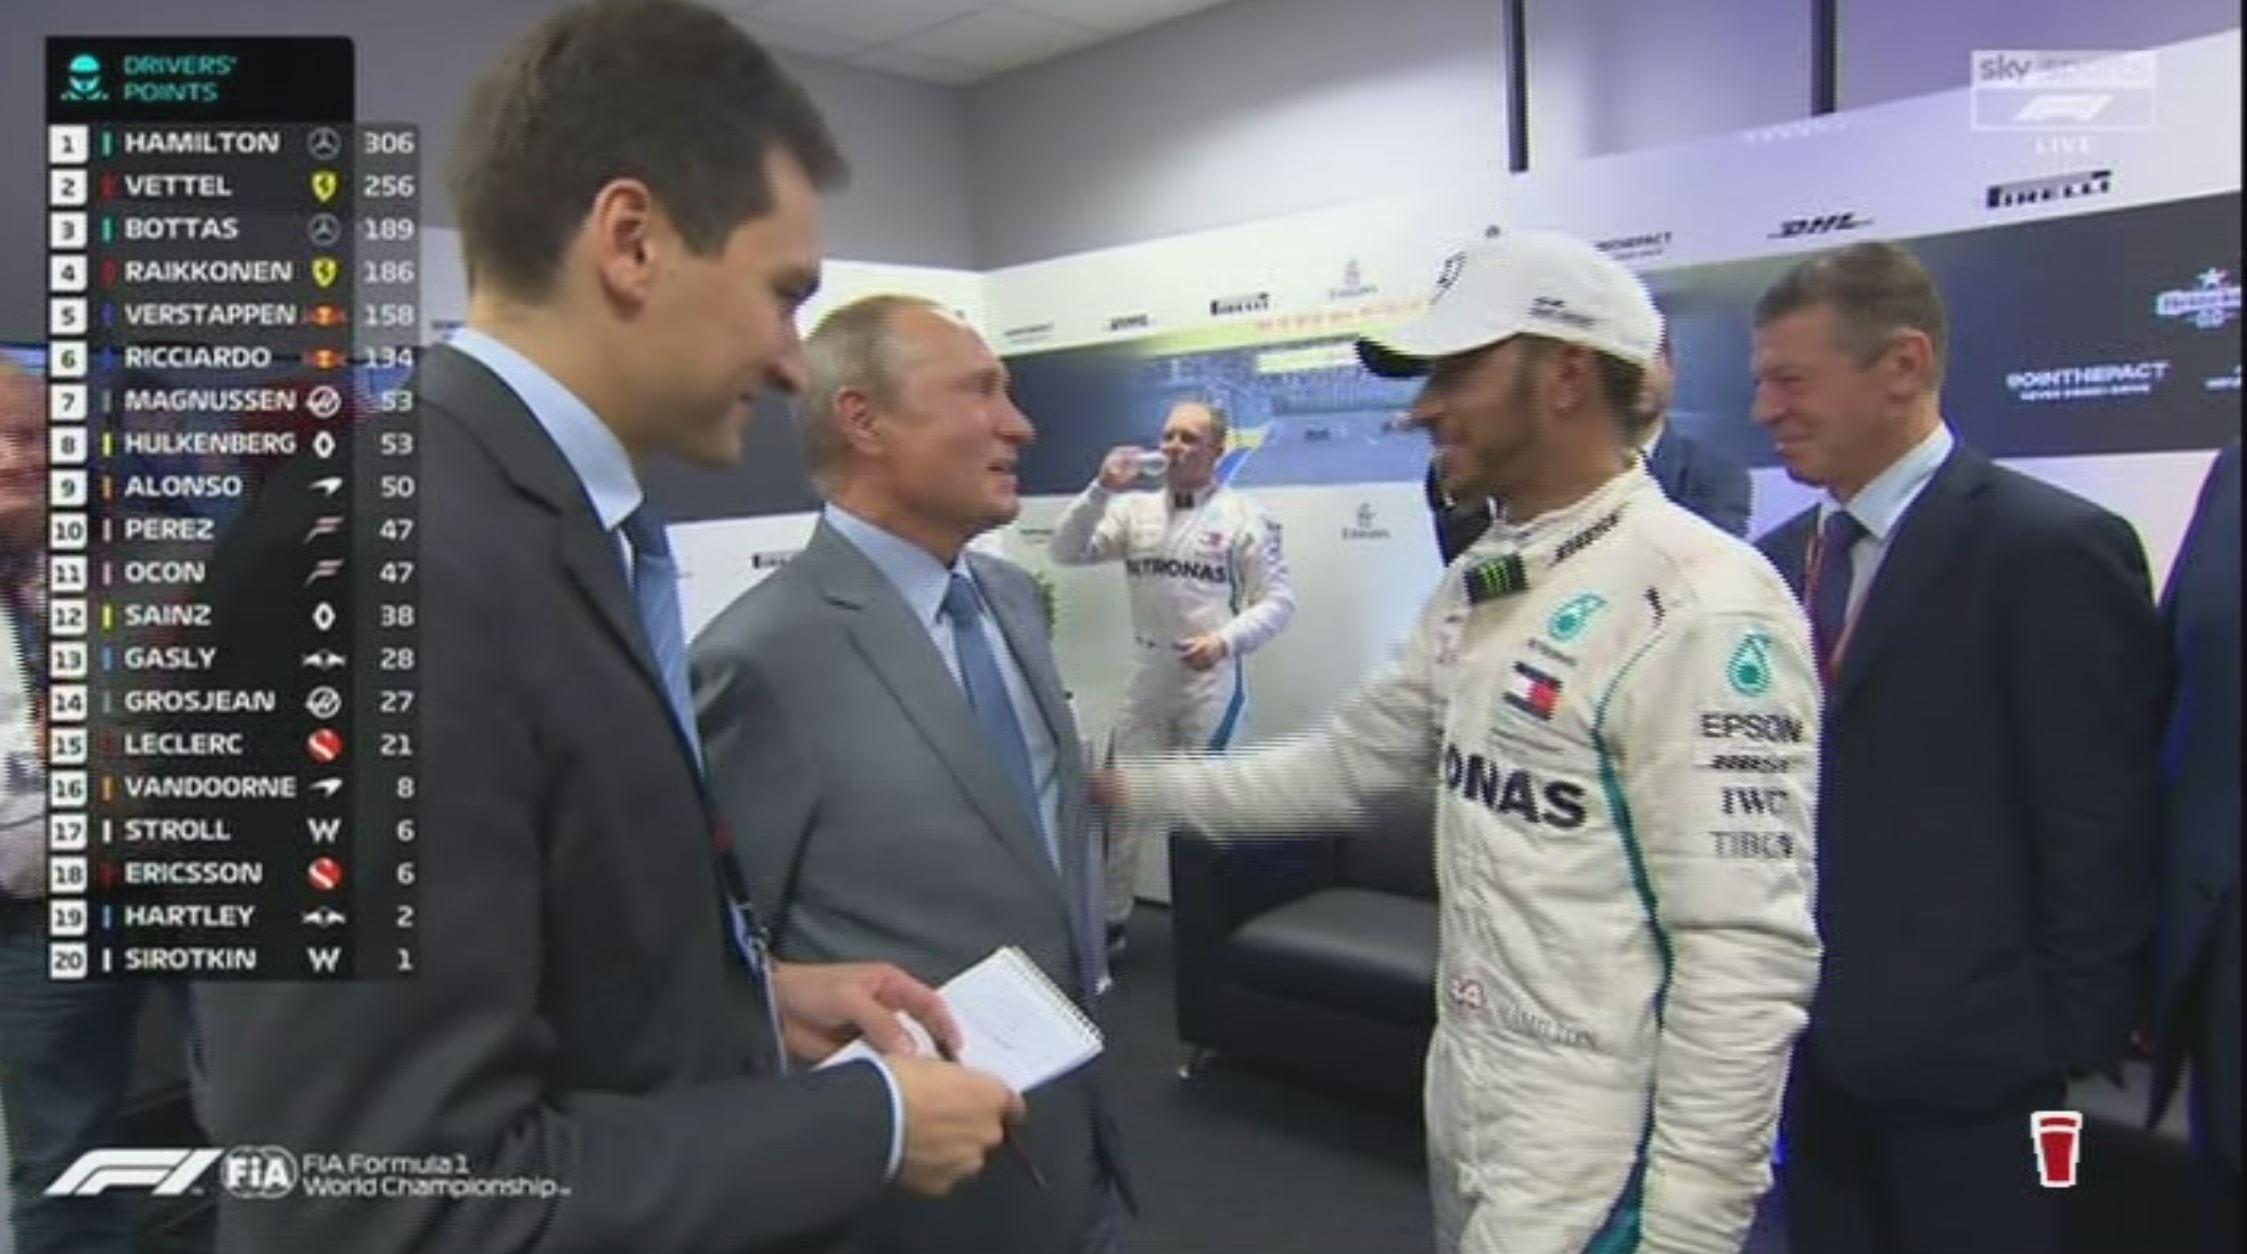 Lewis Hamilton pleads his innocence to the Russian president, saying he didn't do it previously